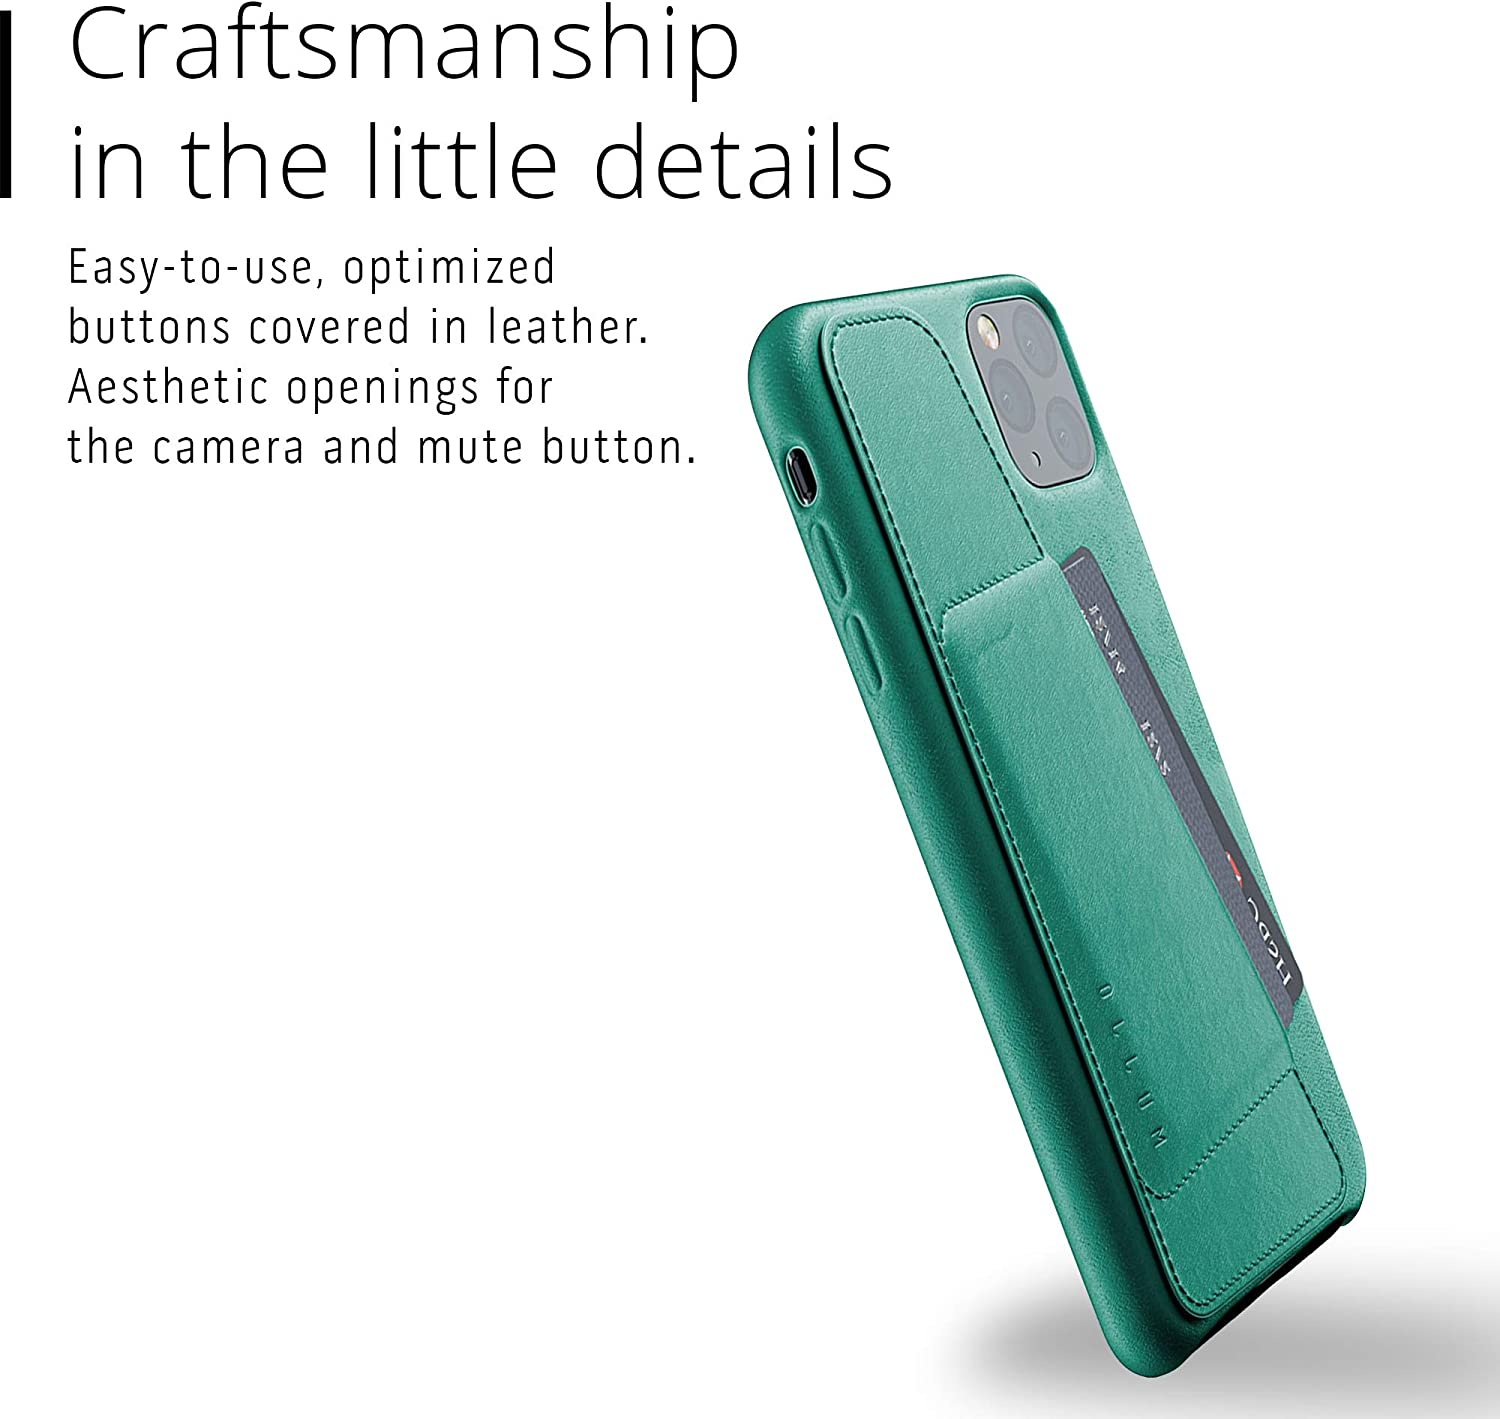 Mujjo Full Leather Wallet Case for Apple iPhone Pro Max 2-3 Card Holder Pocket Premium Soft Supple Leather Unique Natural Aging Alpine Green